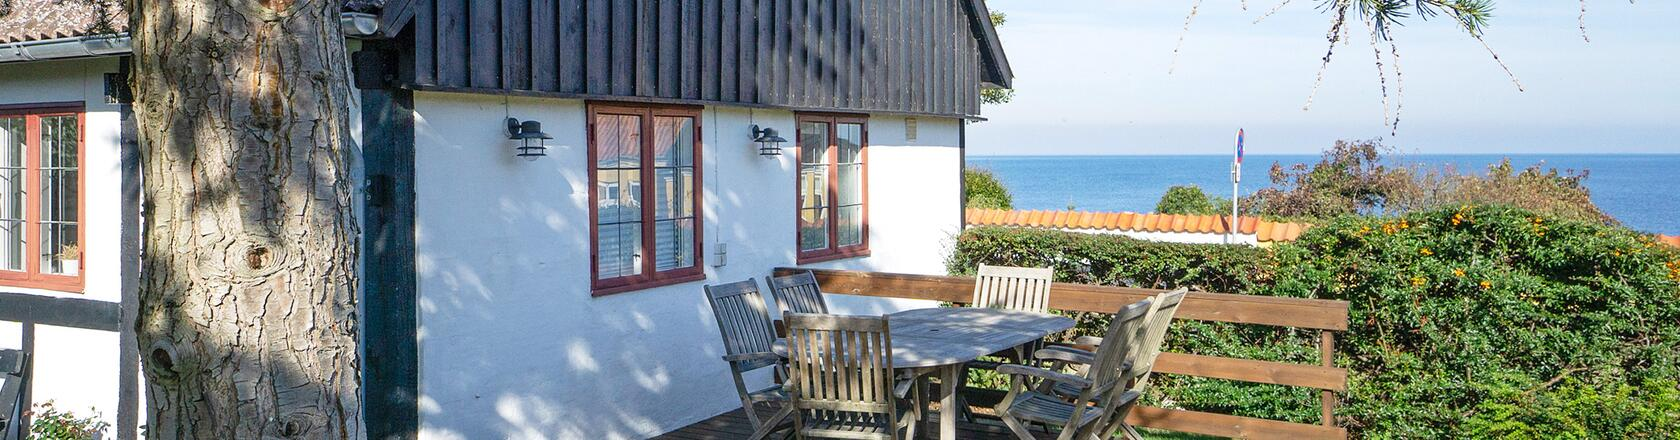 Sandvig in Denmark - Rent a holiday home  with DanCenter